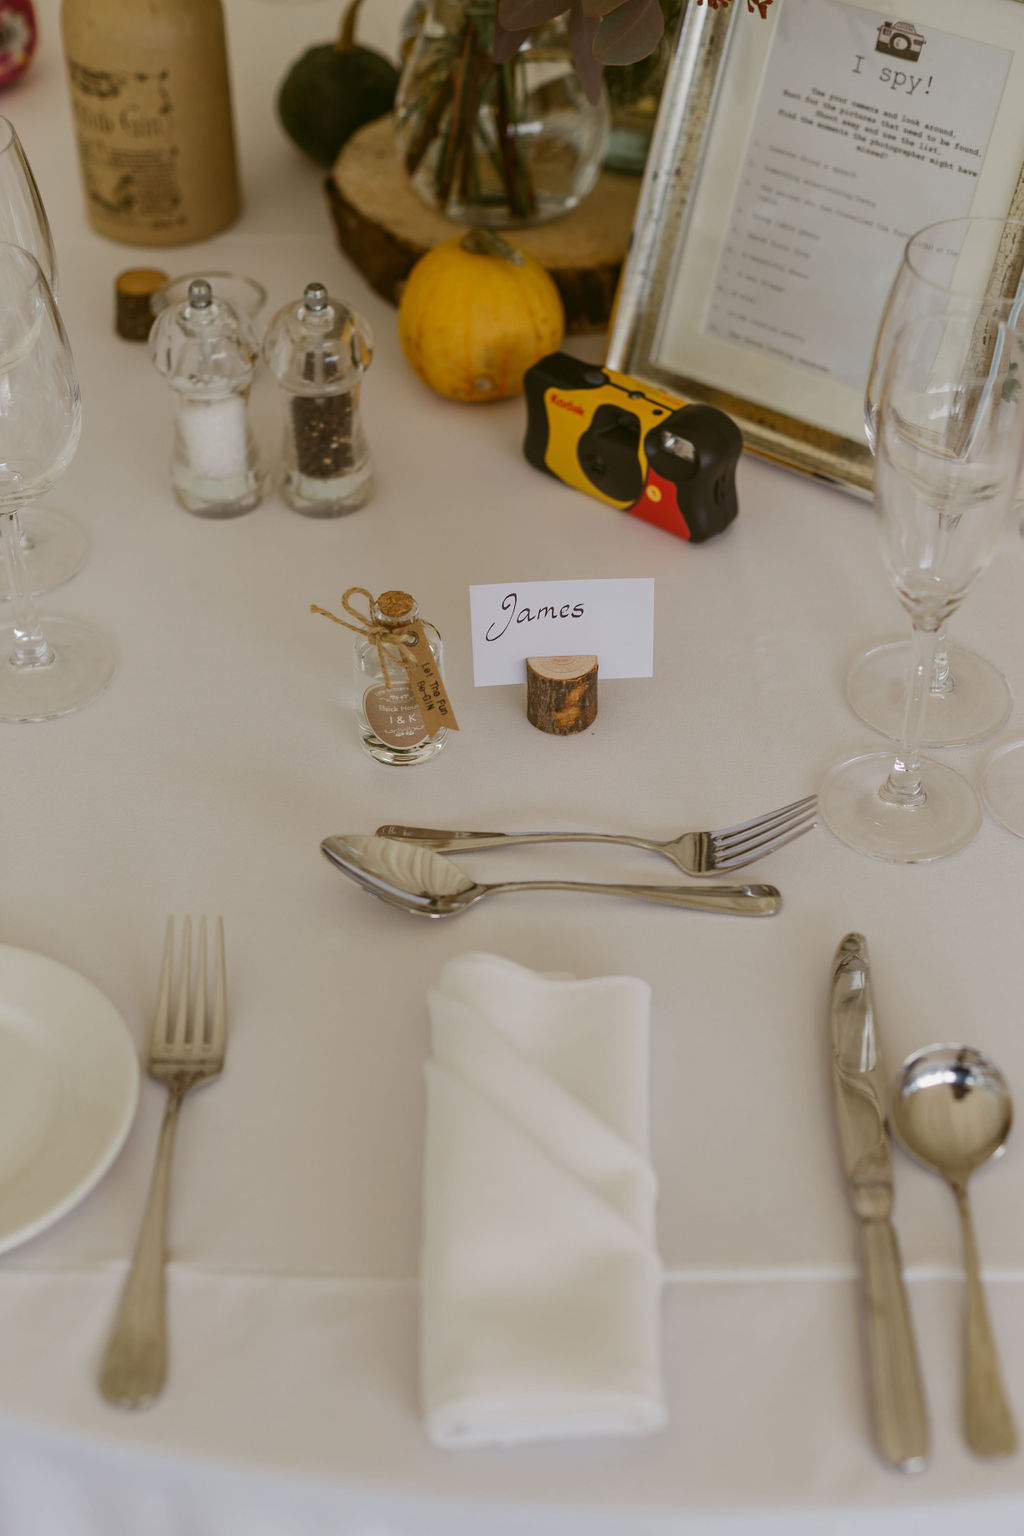 Sumple table setting with wooden blocks